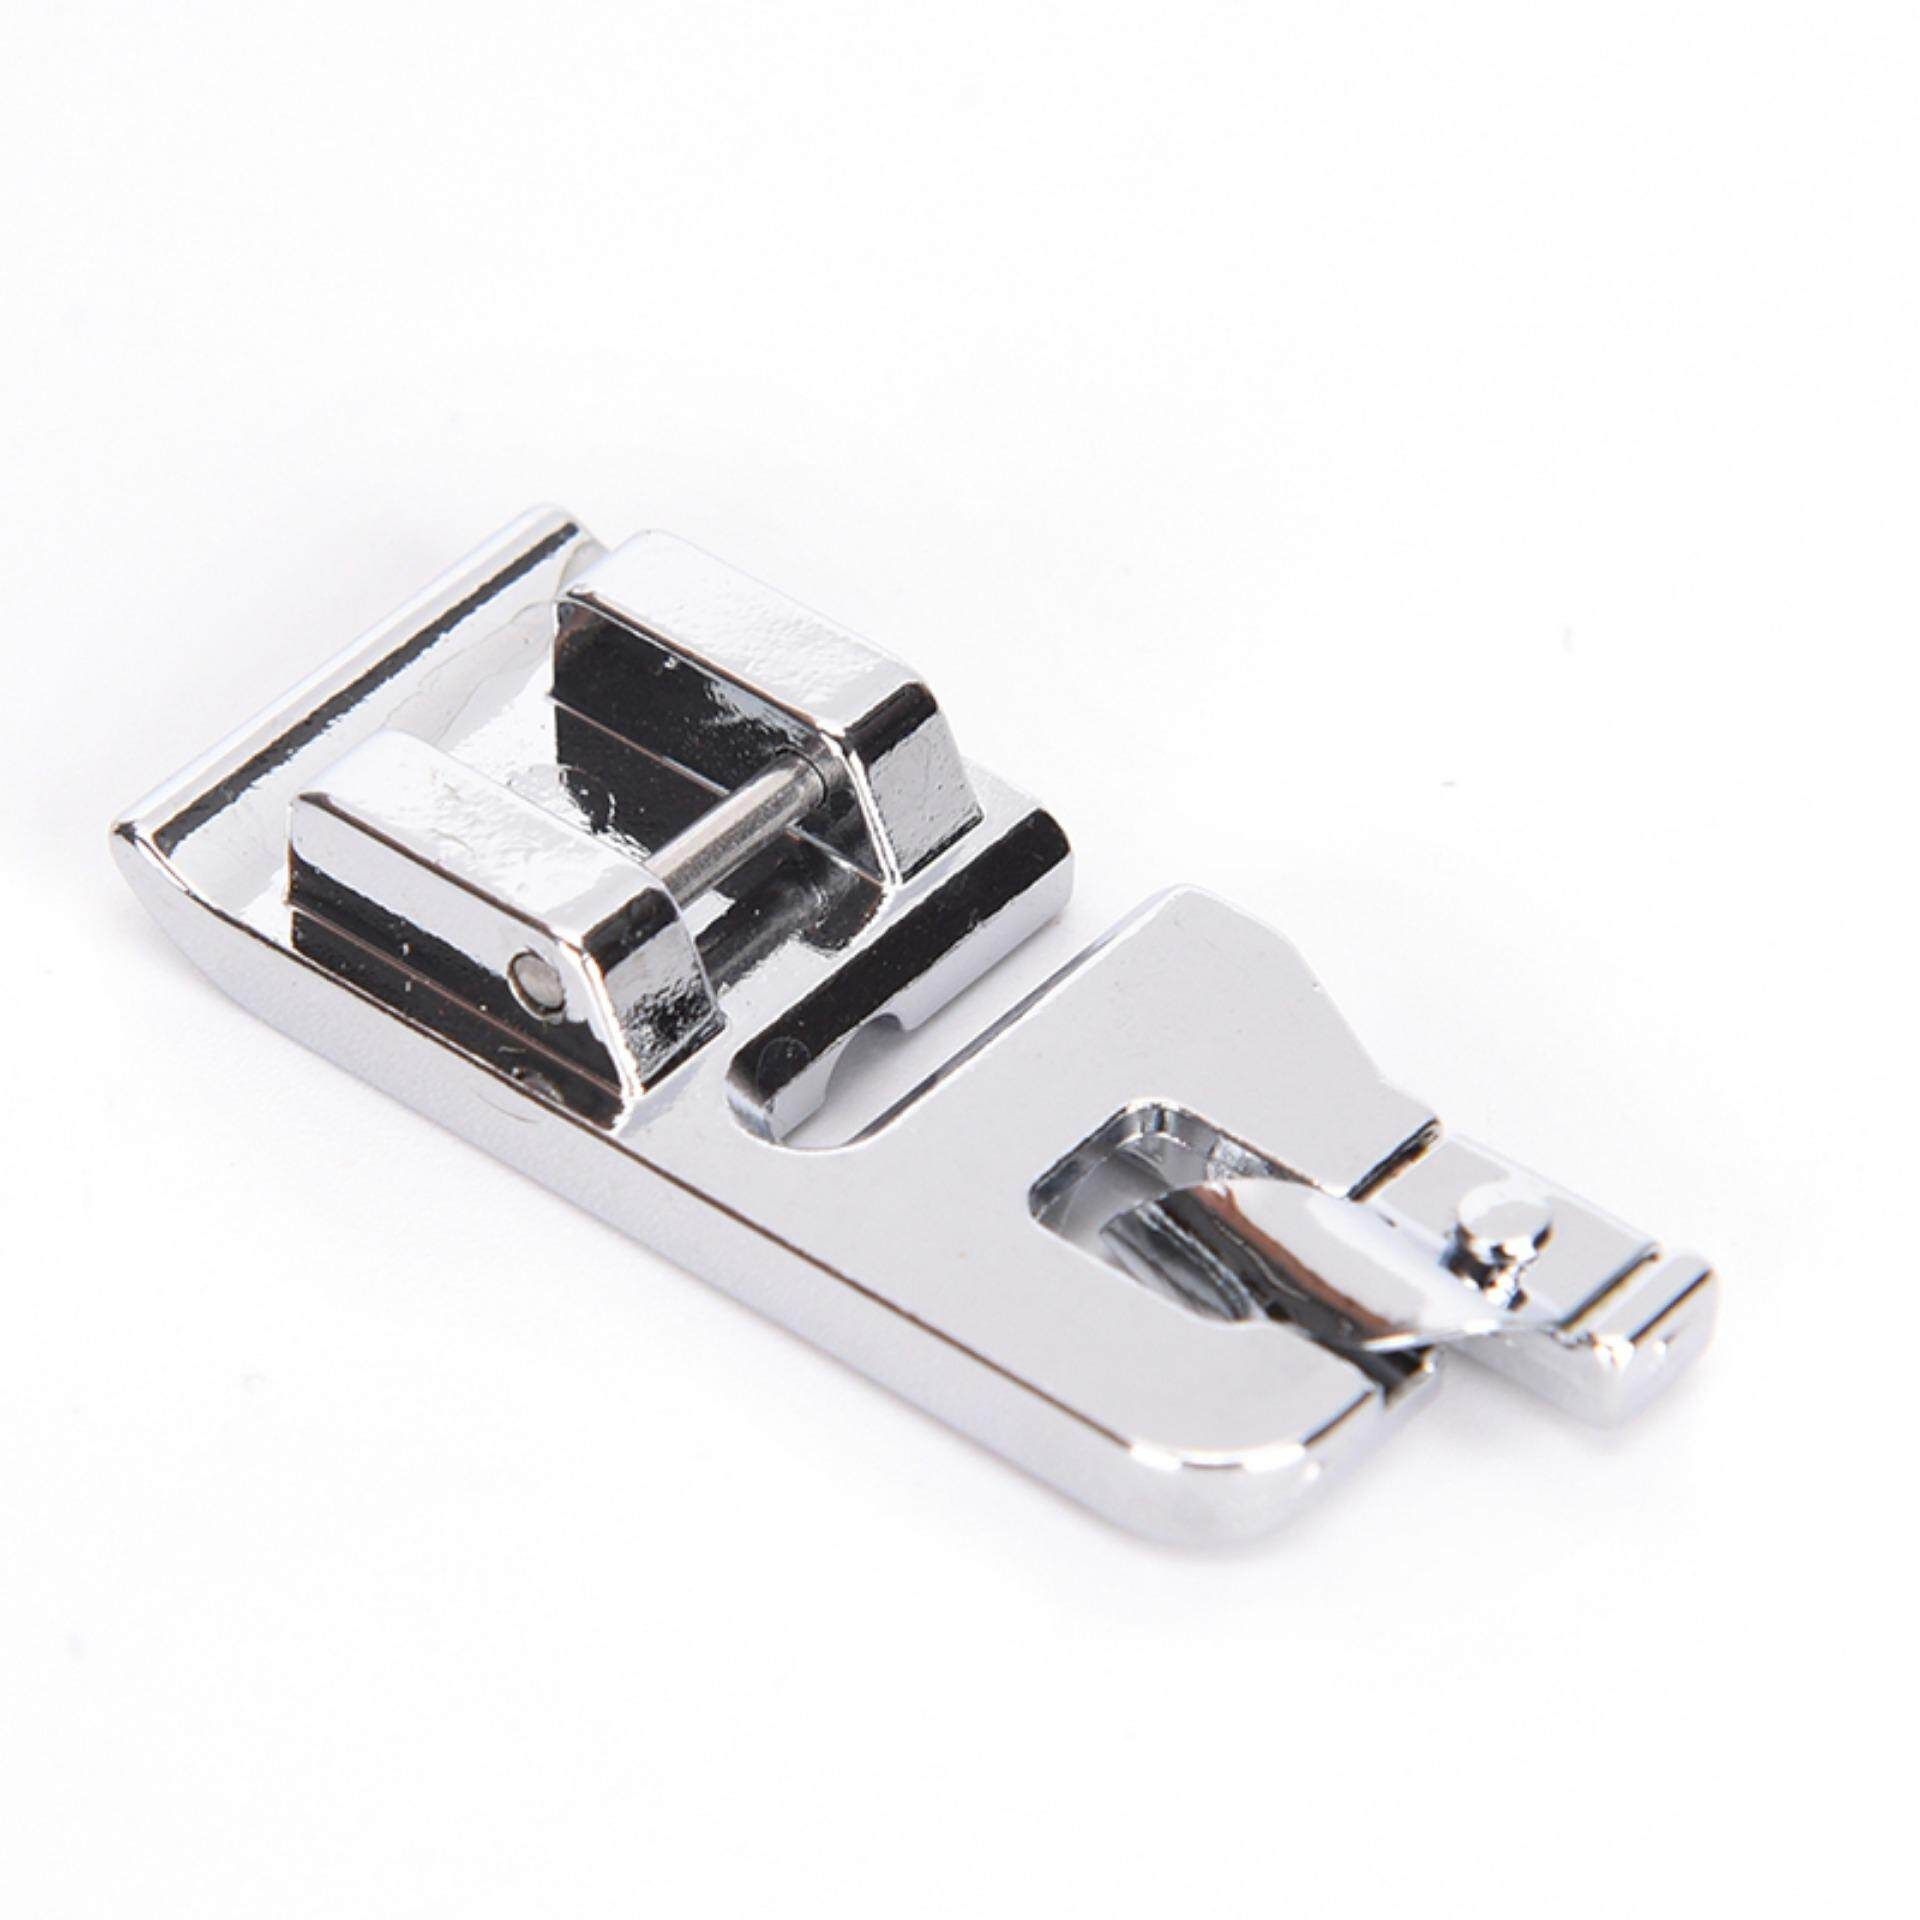 Rolled Hem Curling Presser Foot Feet For Sewing Machine Brother Janome Craft 6mm - intl